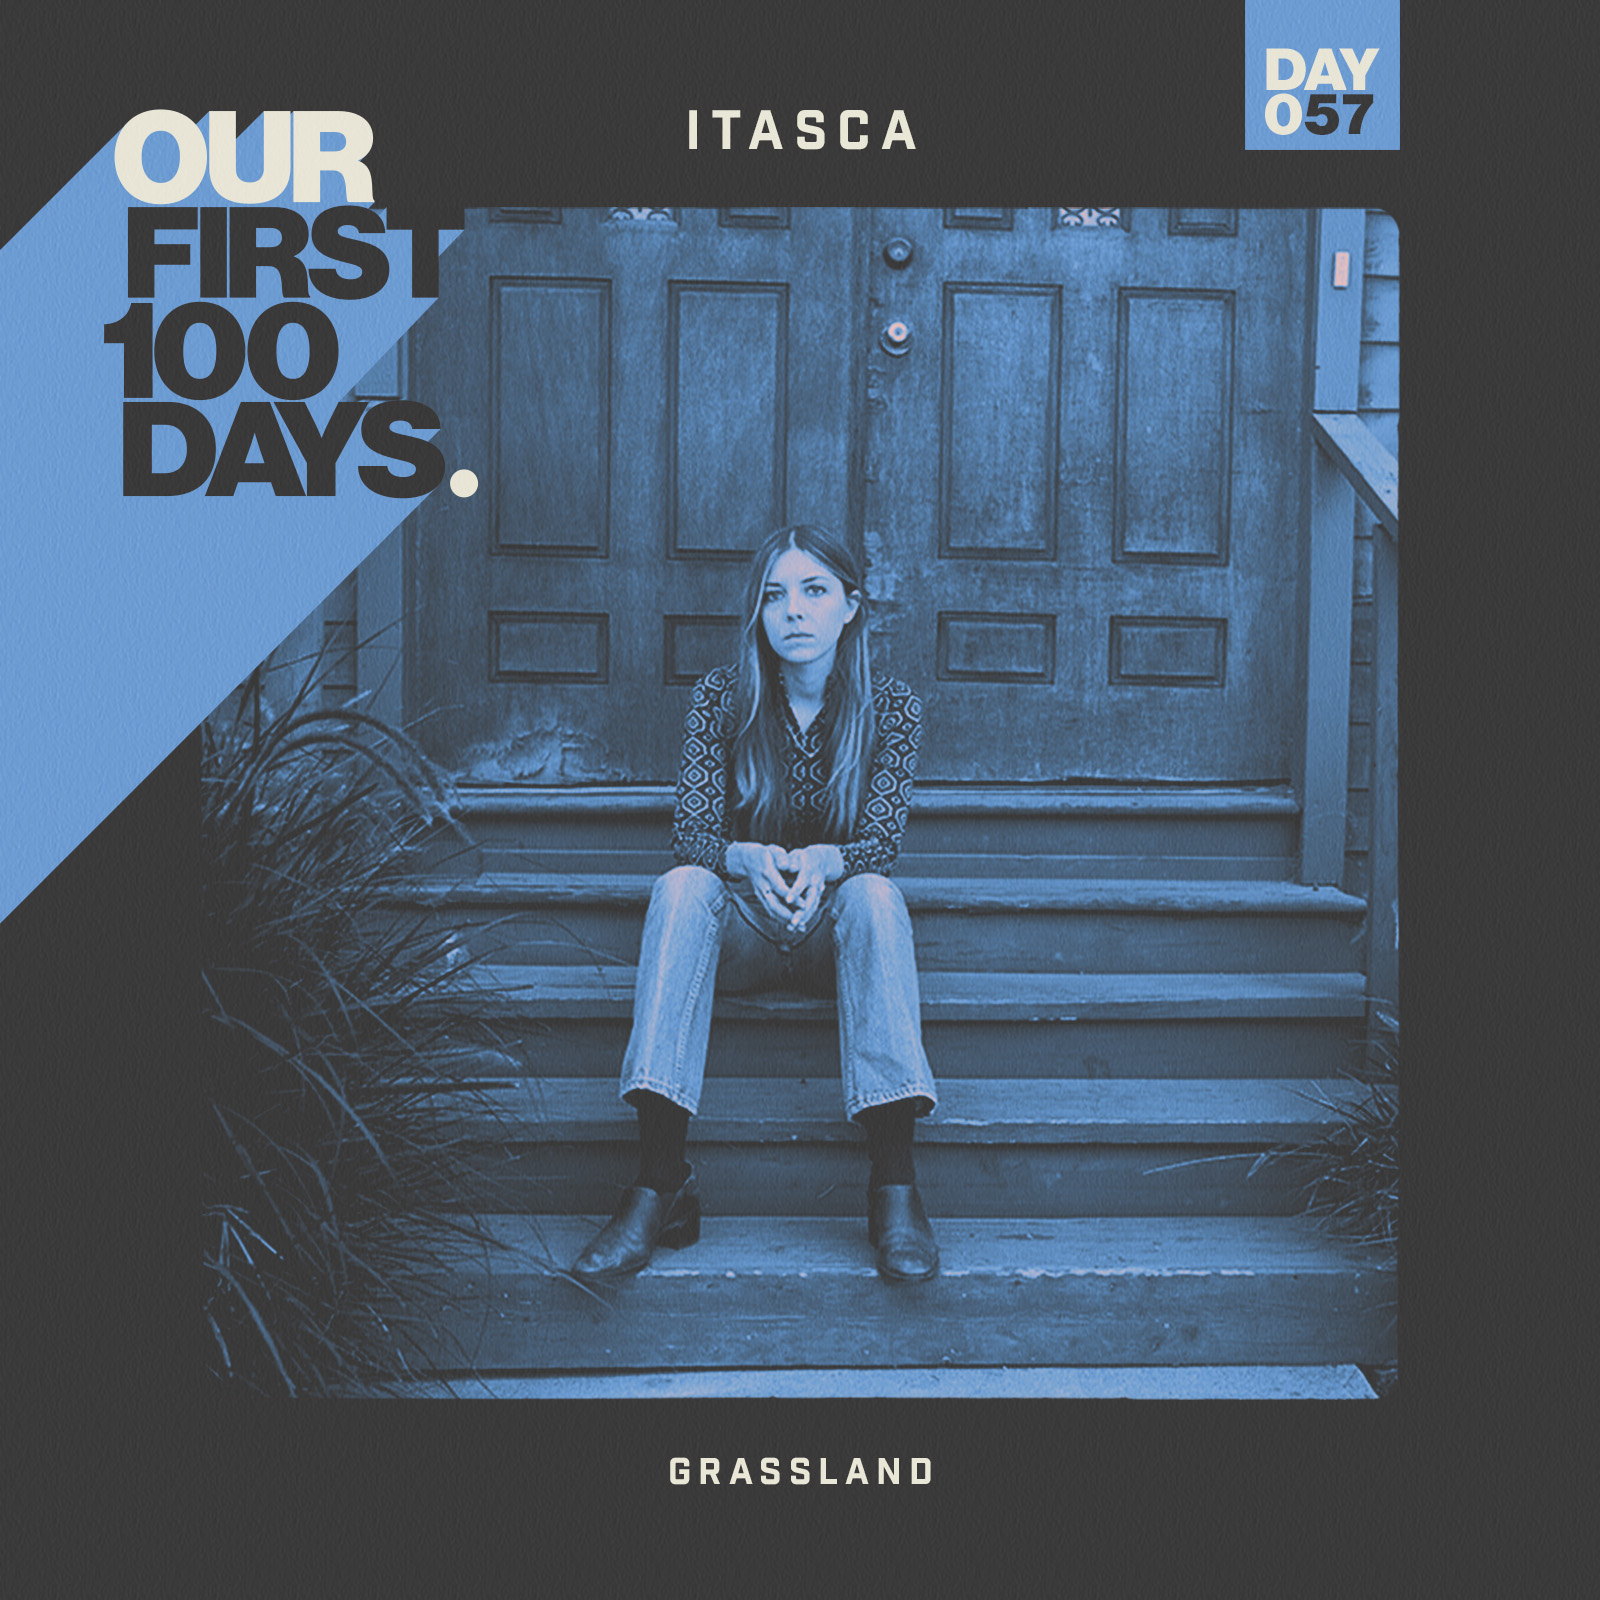 Itasca Premieres Grassland For Our First 100 Days Paradise Of Model Railroad Electronics Rob Paisley Video Download Friends And Distributors At The Secretly Group Are Assembling A Durational Track Compilation To Benefit Variety Worthy Organizations Involved